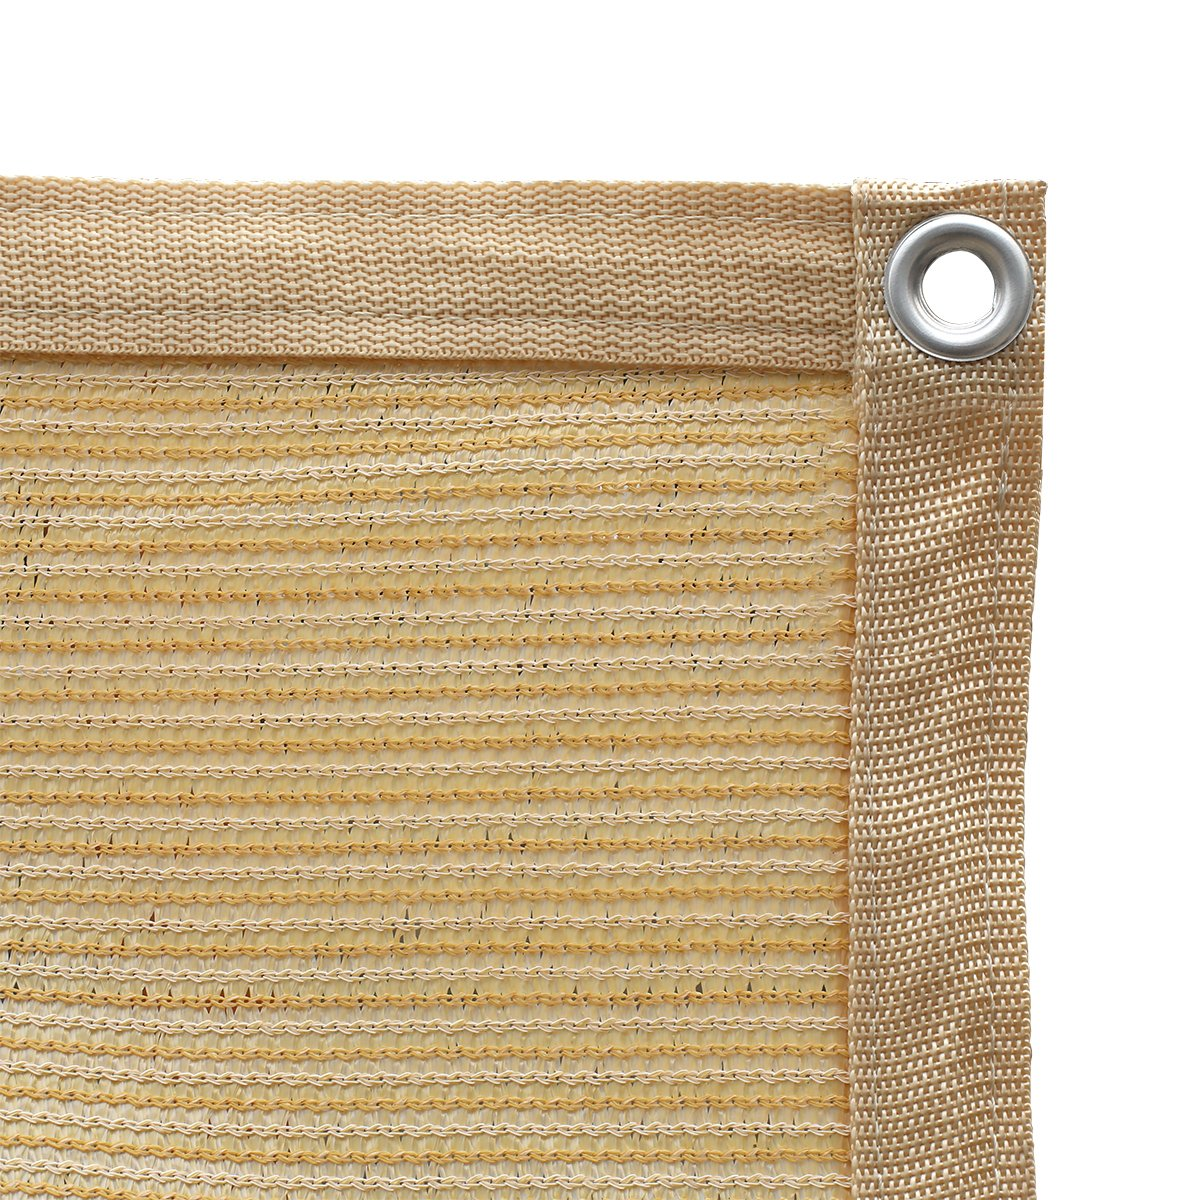 Shatex 90% Shade Fabric Sun Shade Cloth with Grommets for Pergola Cover Canopy 12' x 12', Wheat by Shatex